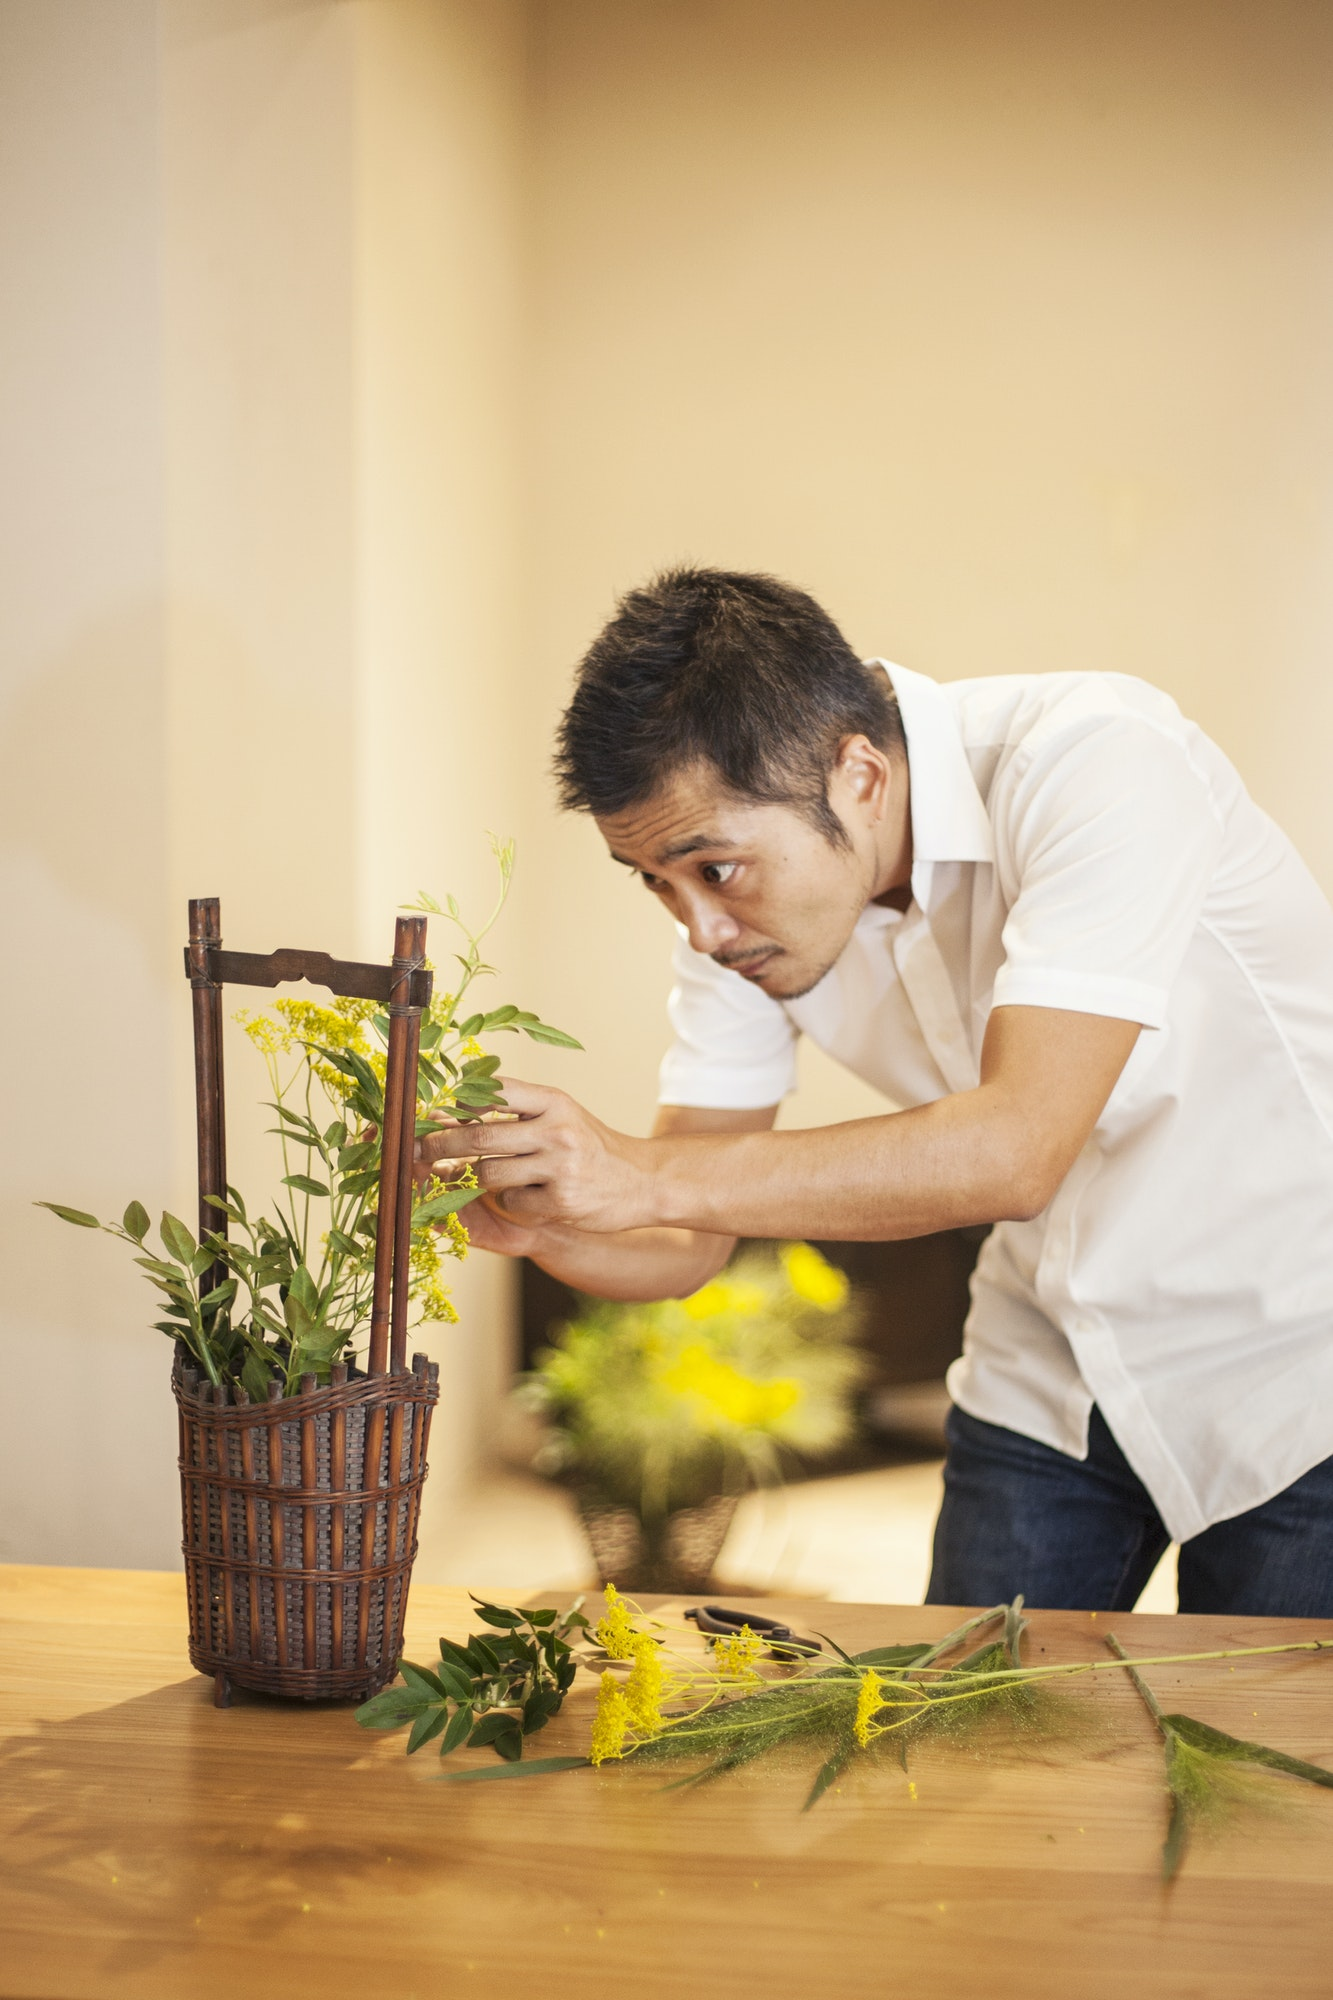 Japanese man standing in flower gallery, working on Ikebana arrangement.